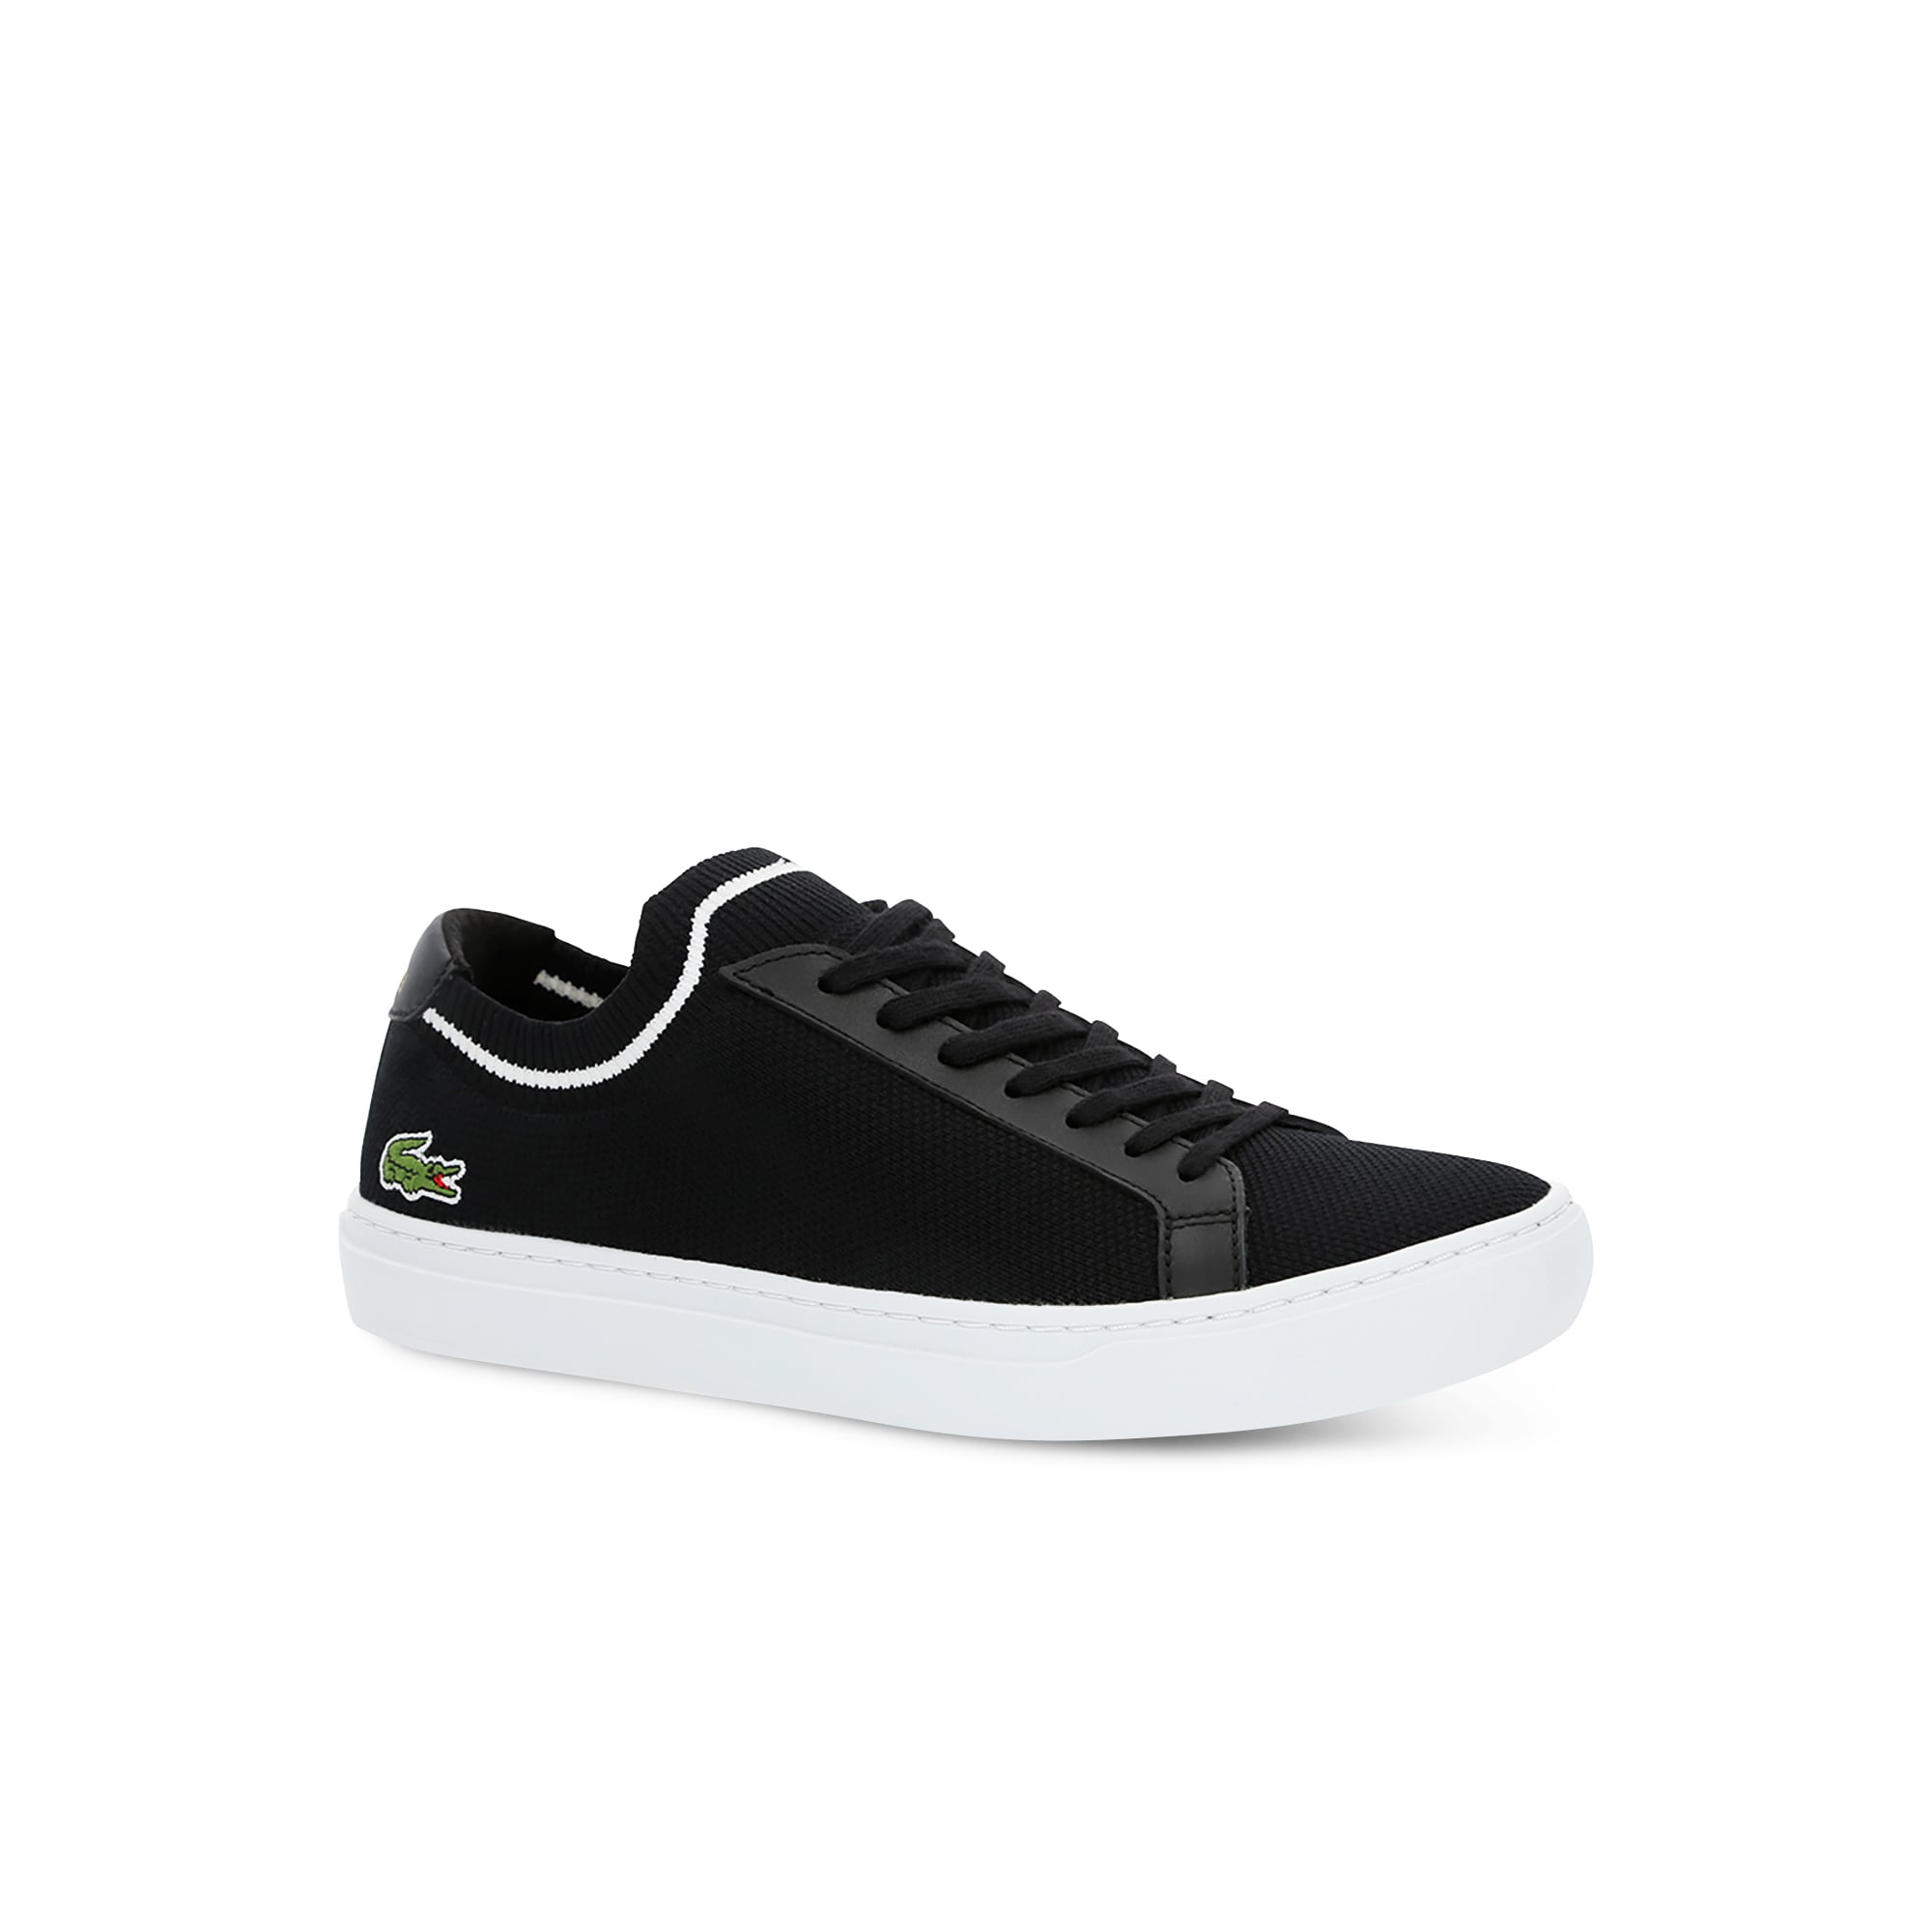 f6ef29ece Men s La Piquée Textile Trainers · + 3 colors